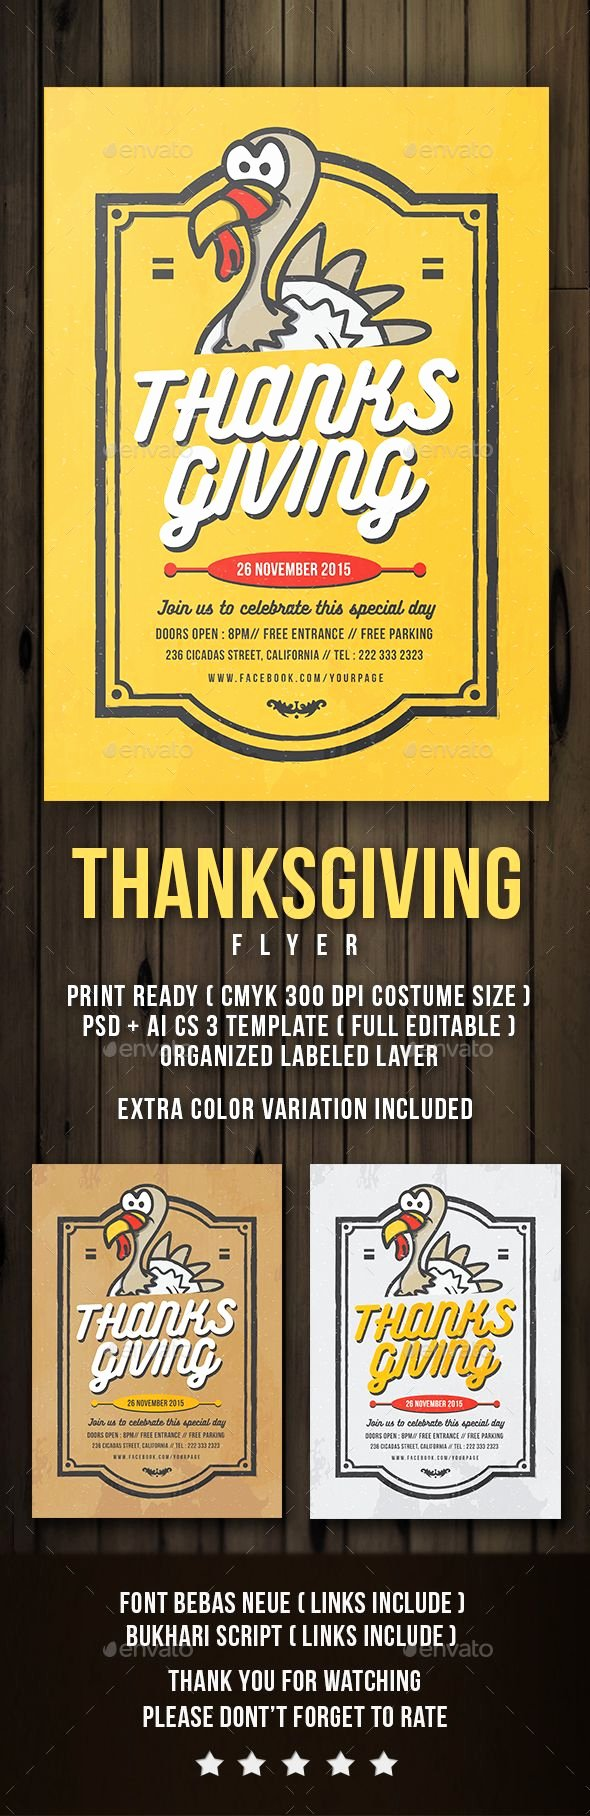 Thanksgiving Flyer Template Free Unique Flyer Thanksgiving